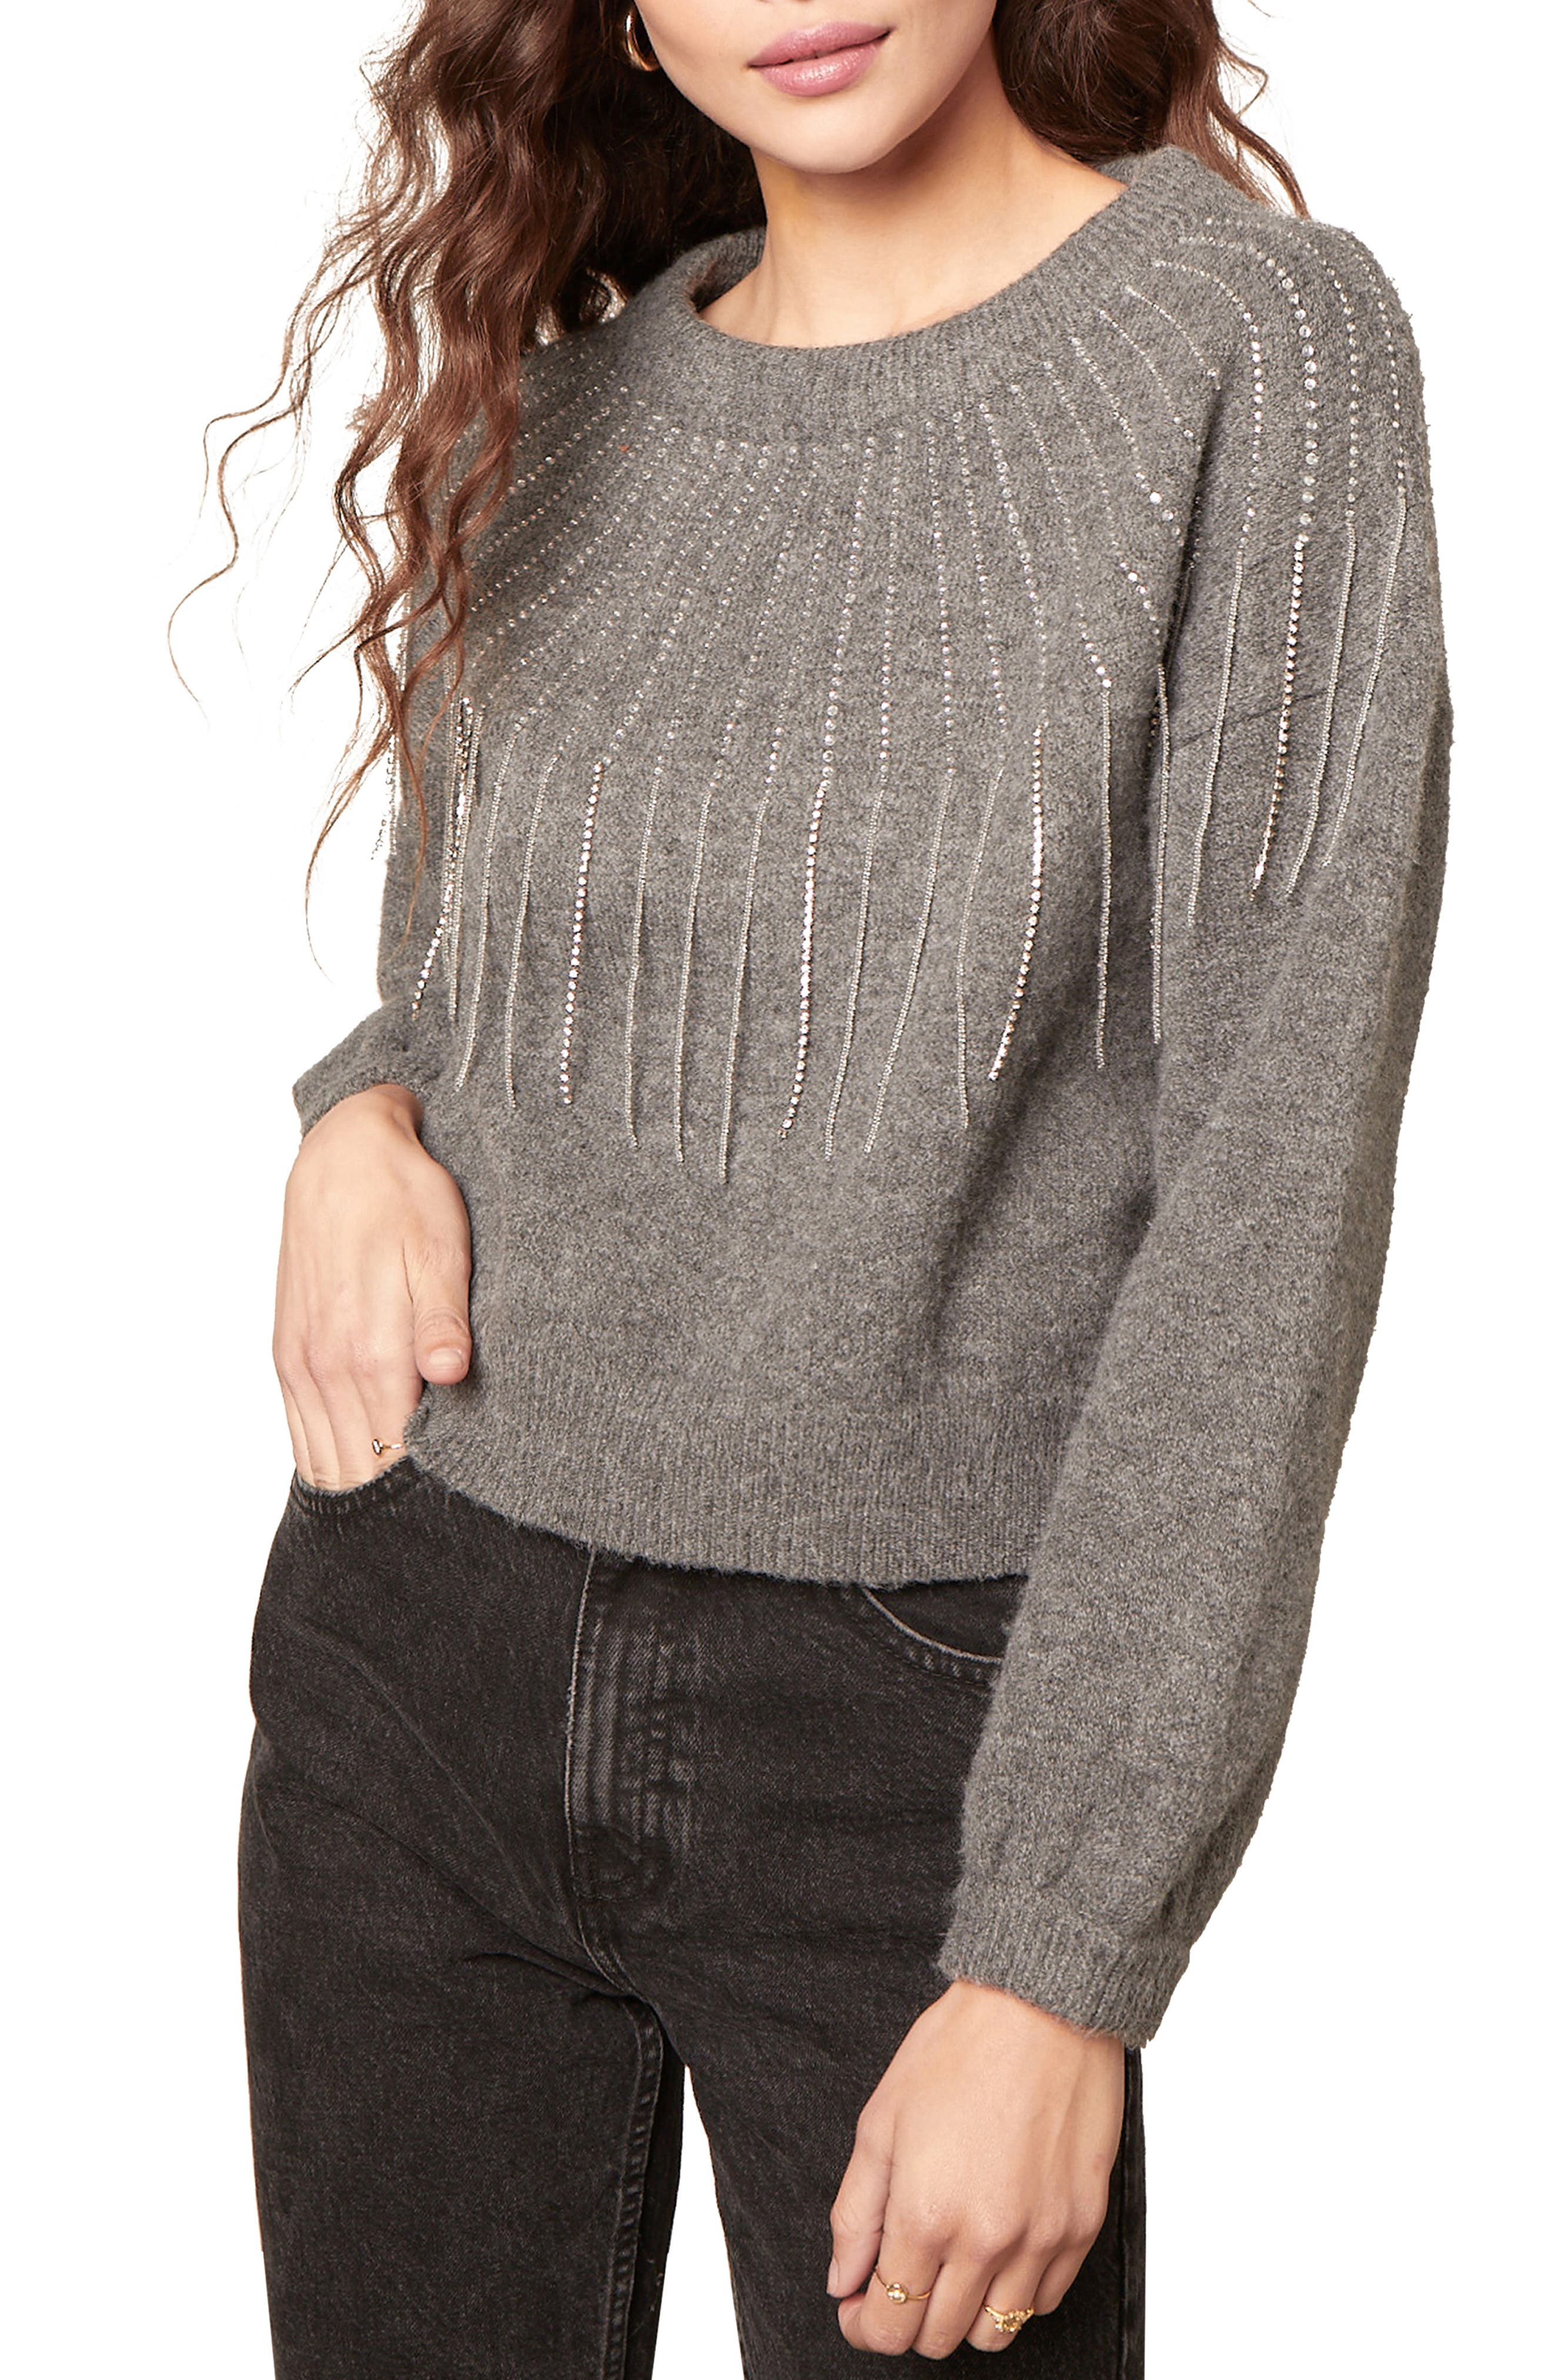 If You Fancy Embellished Sweater